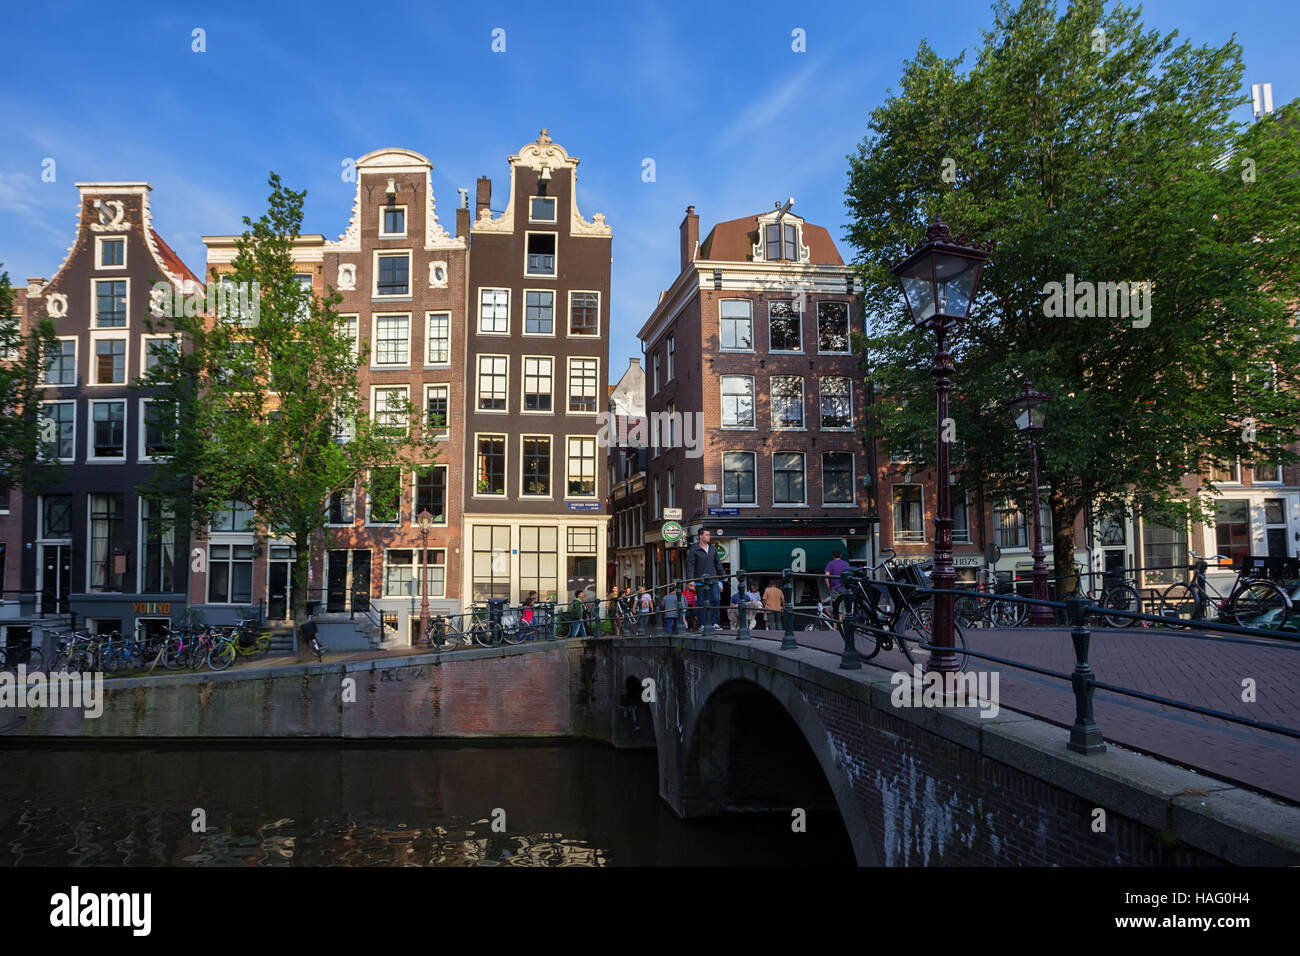 AMSTERDAM - CIRCA JUNE 2014 Stock Photo